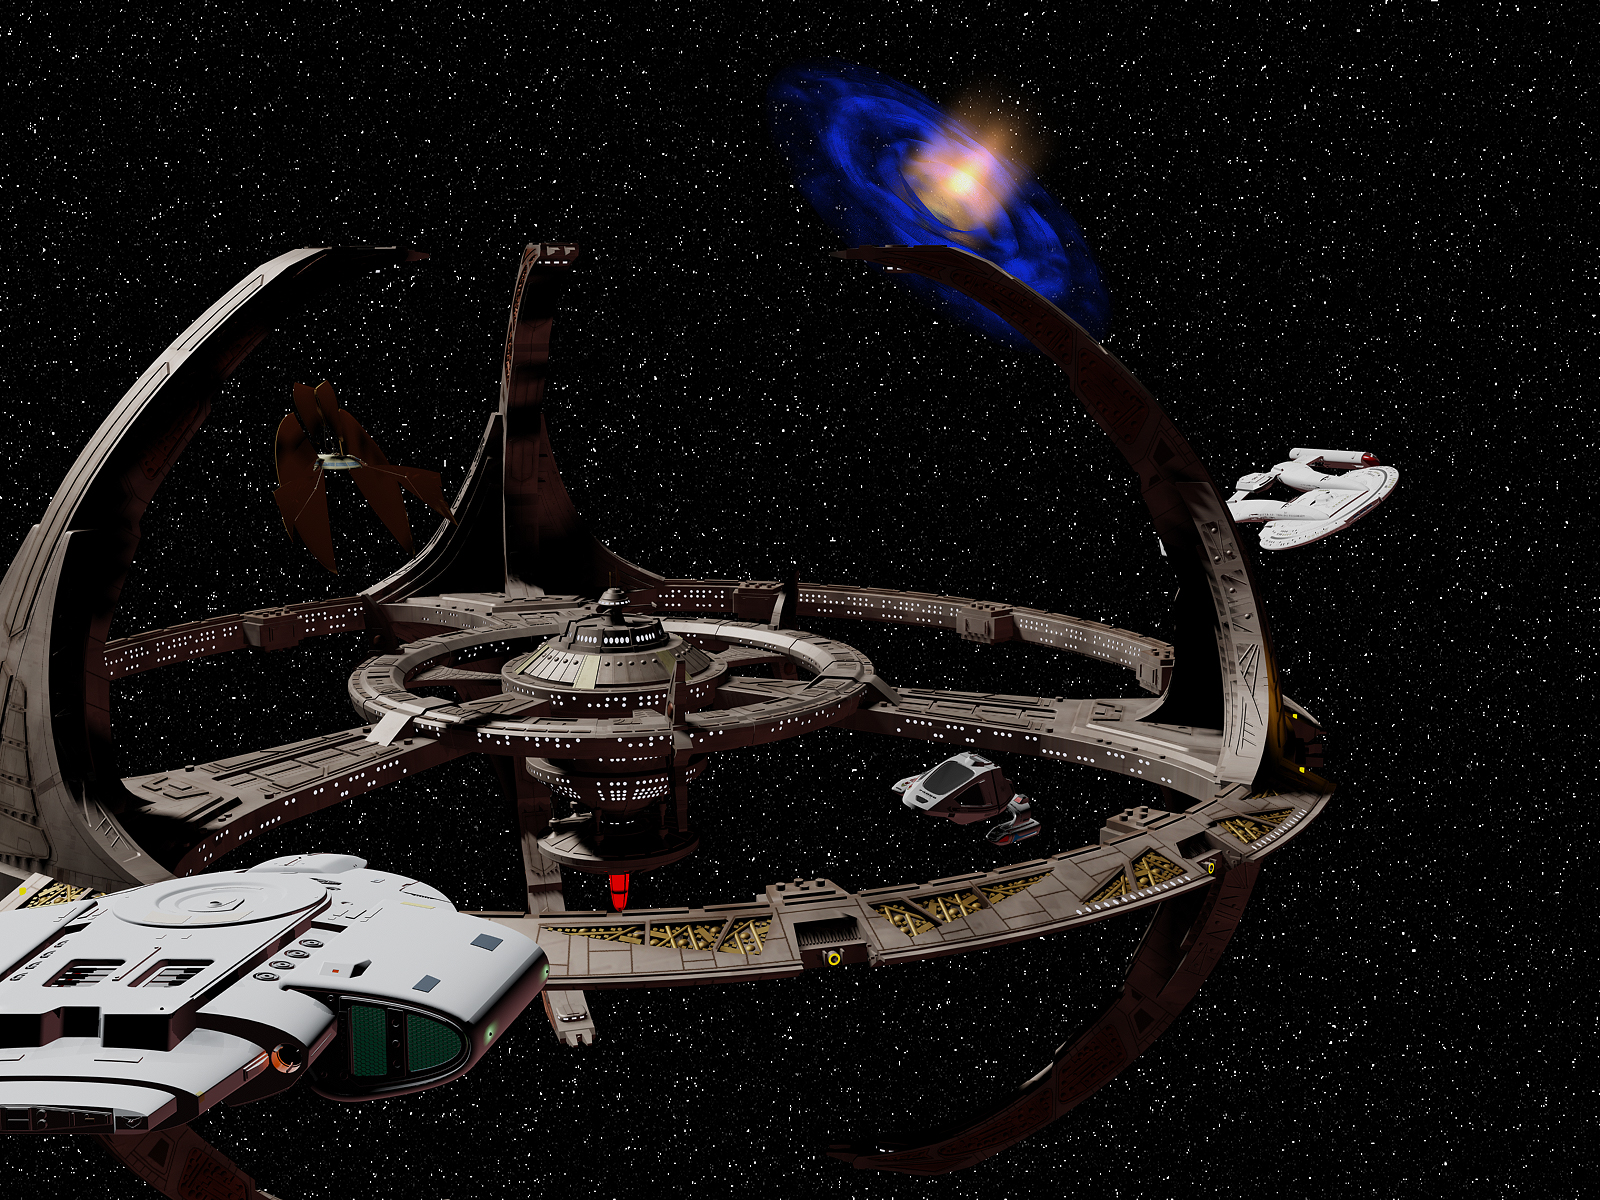 star trek deep space nine Wallpaper and Background 1600x1200